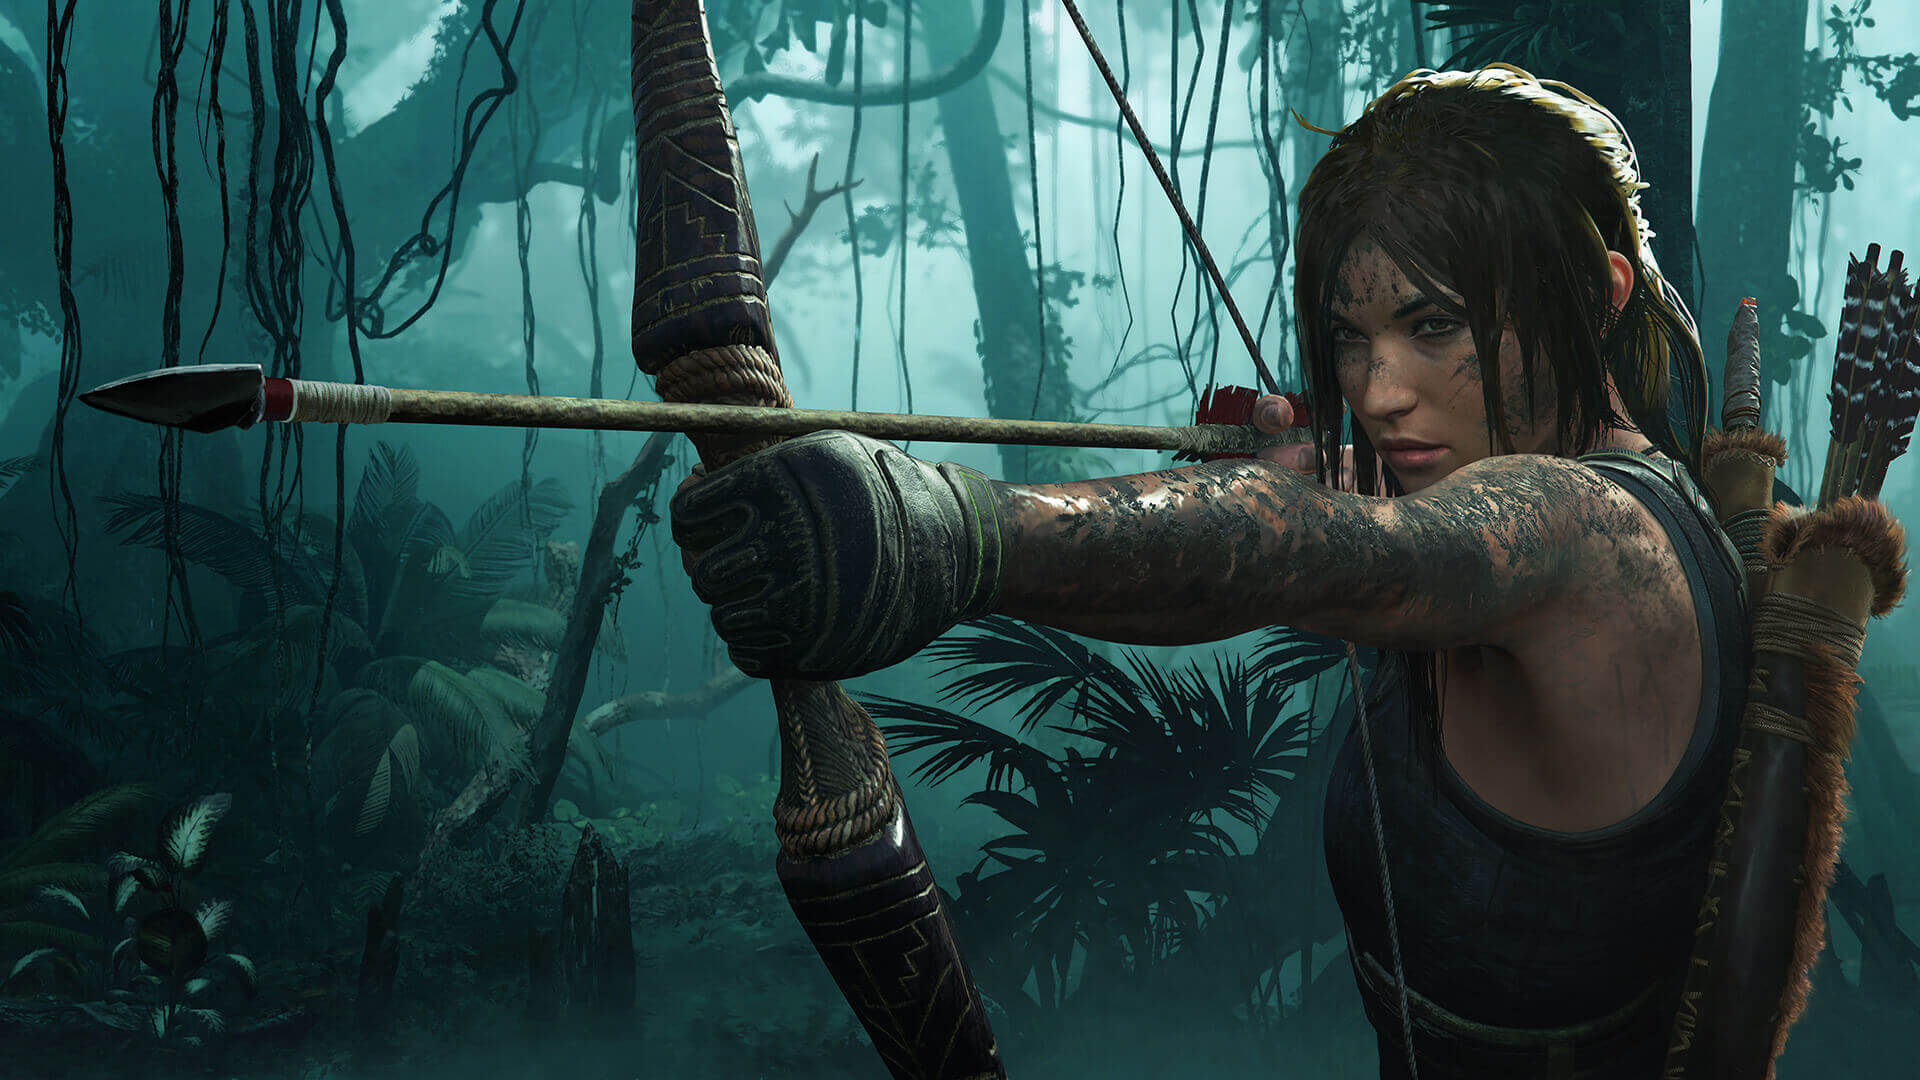 عکس بازی Shadowof the Tomb Raider